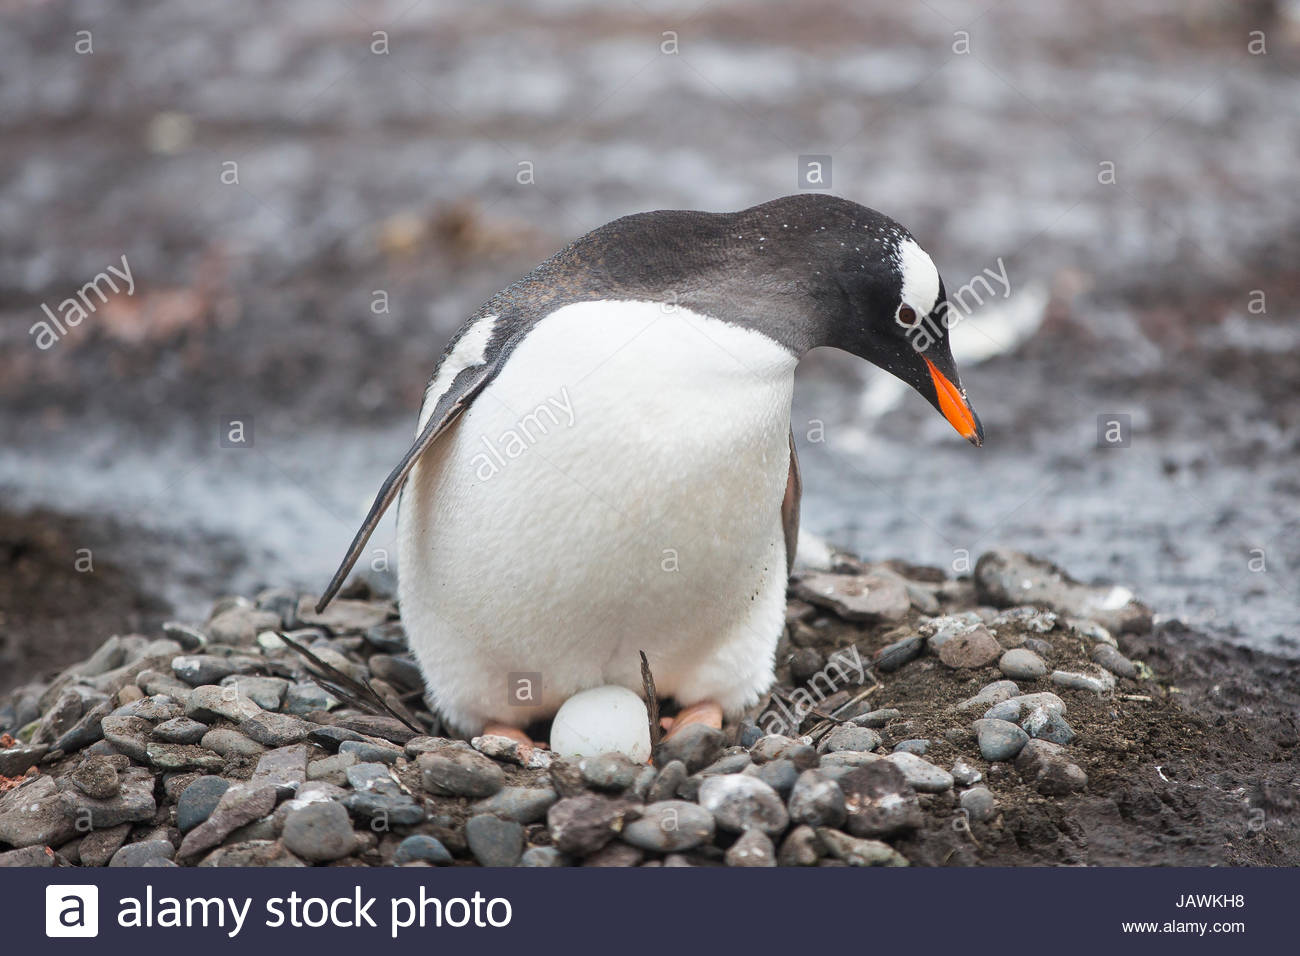 Gentoo penguin nesting and protecting its egg in Antarctica. - Stock Image